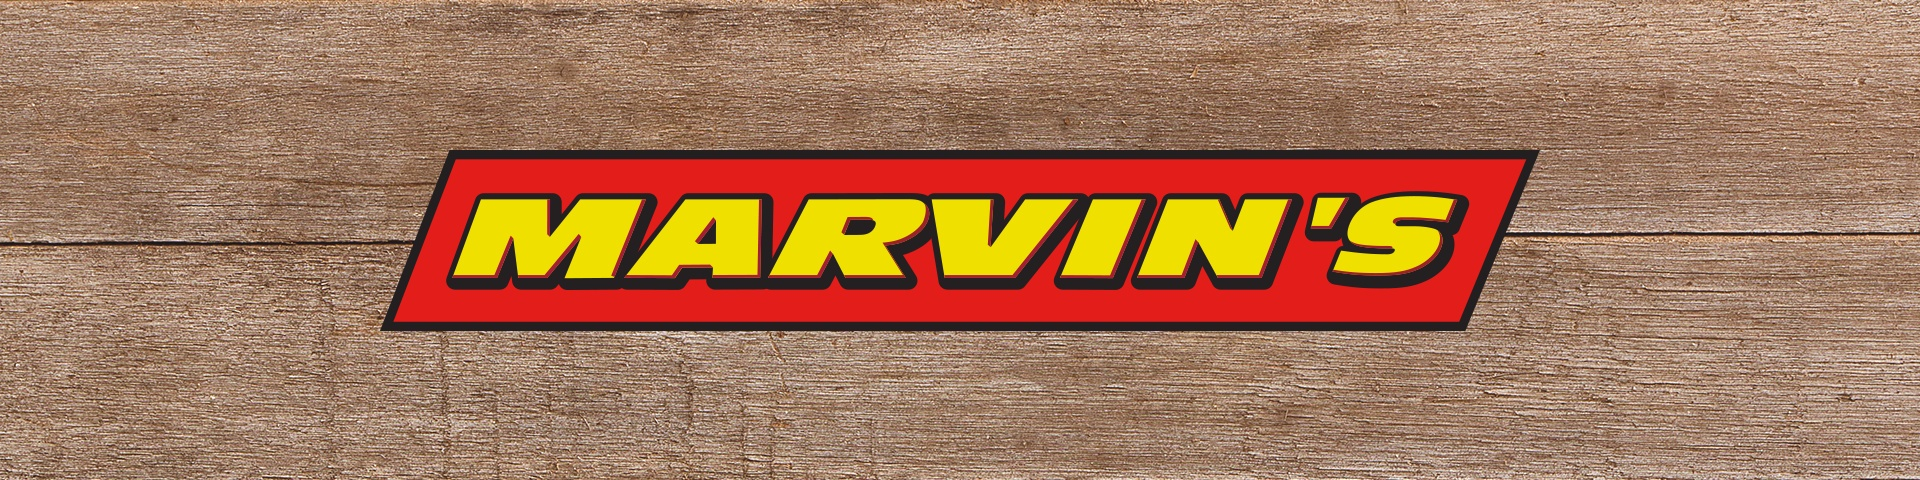 Marvin's